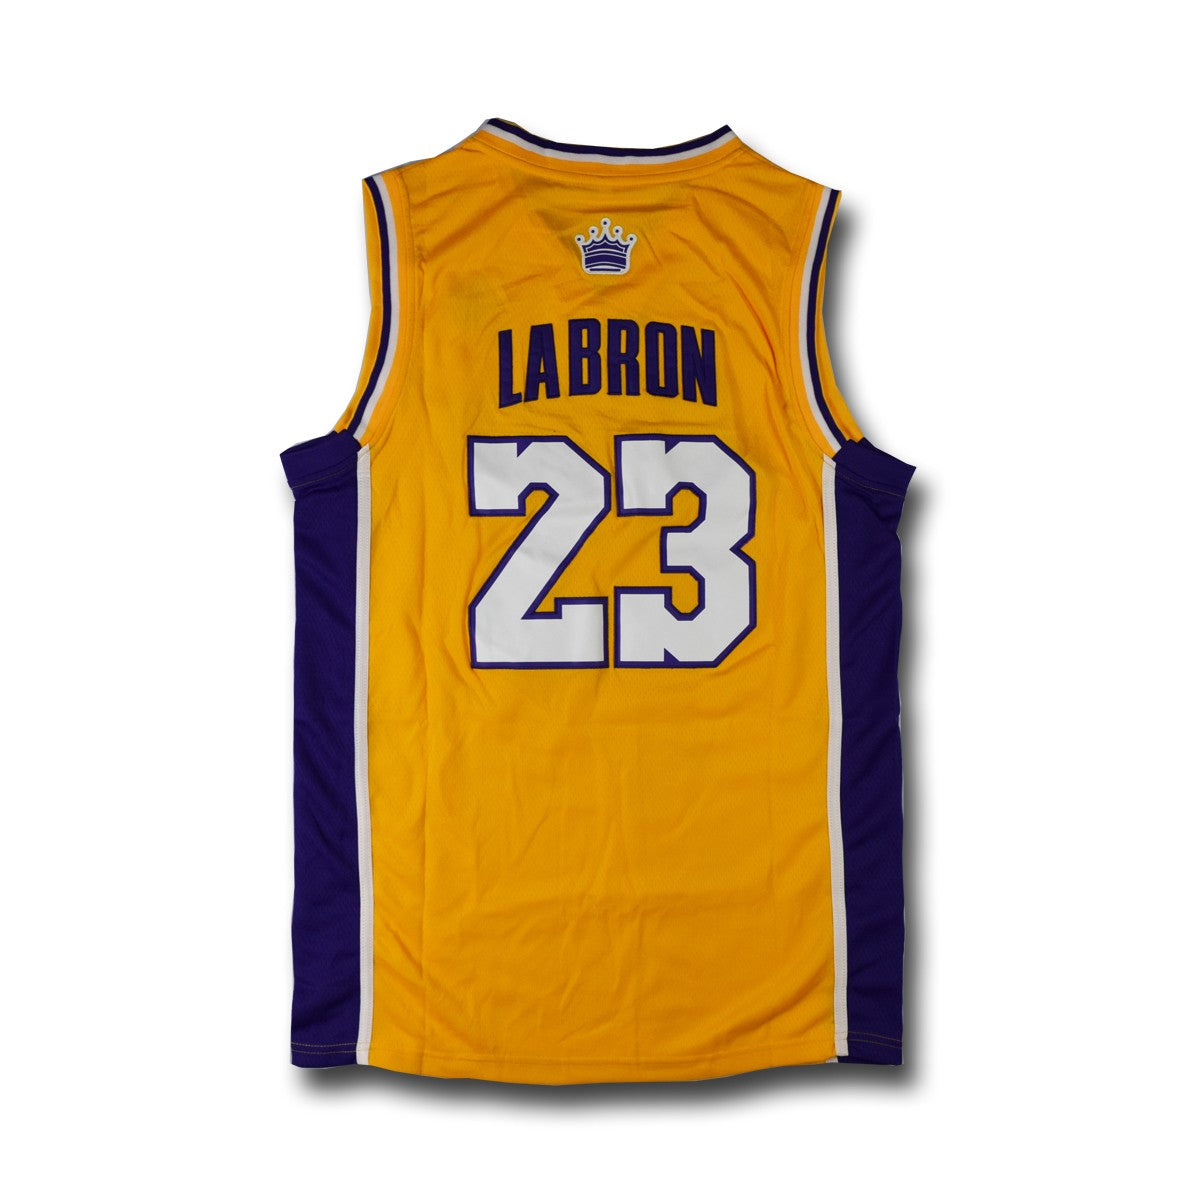 LAbron #23 Yellow Basketball Jersey